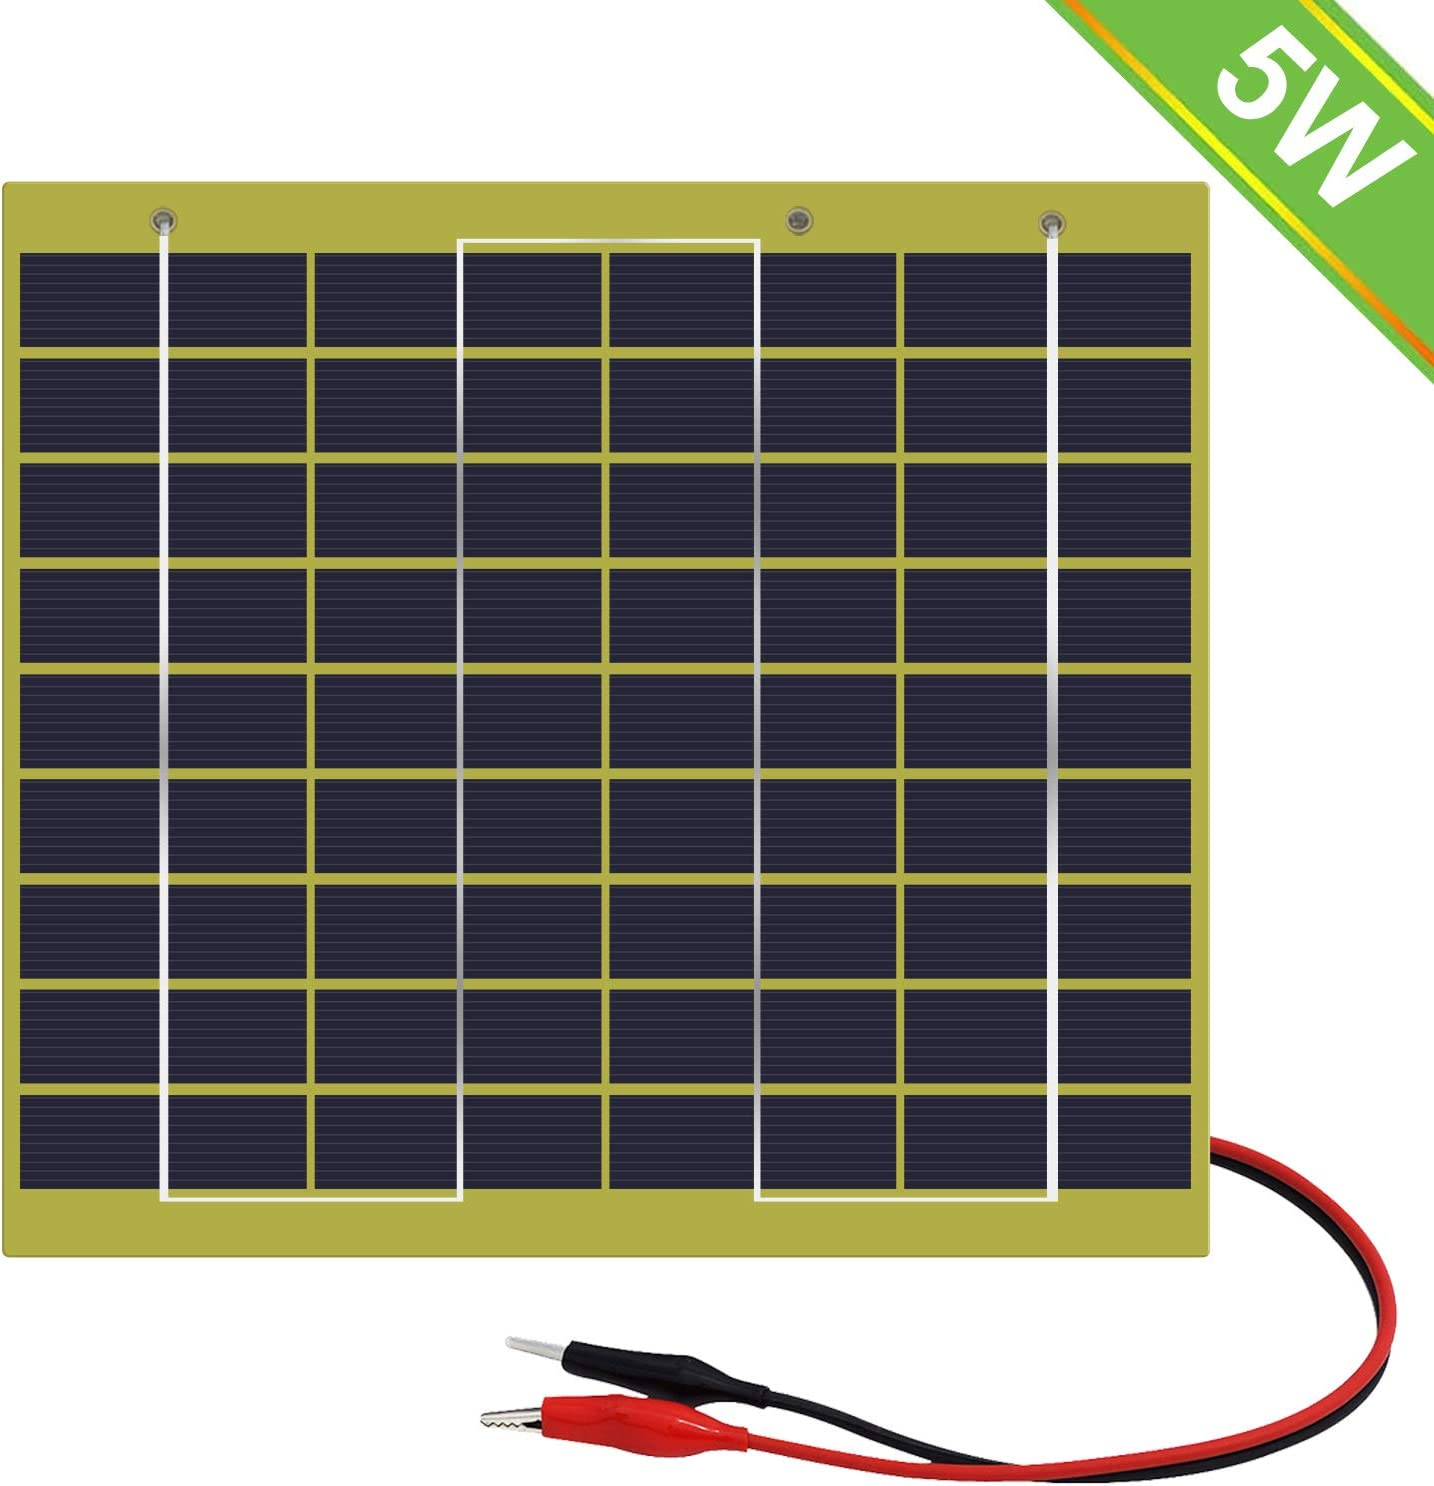 ECO WORTHY 5W 12V Epoxy Solar Panel Module Battery Charger with Battery Clips Diode Easy Carry for Camping